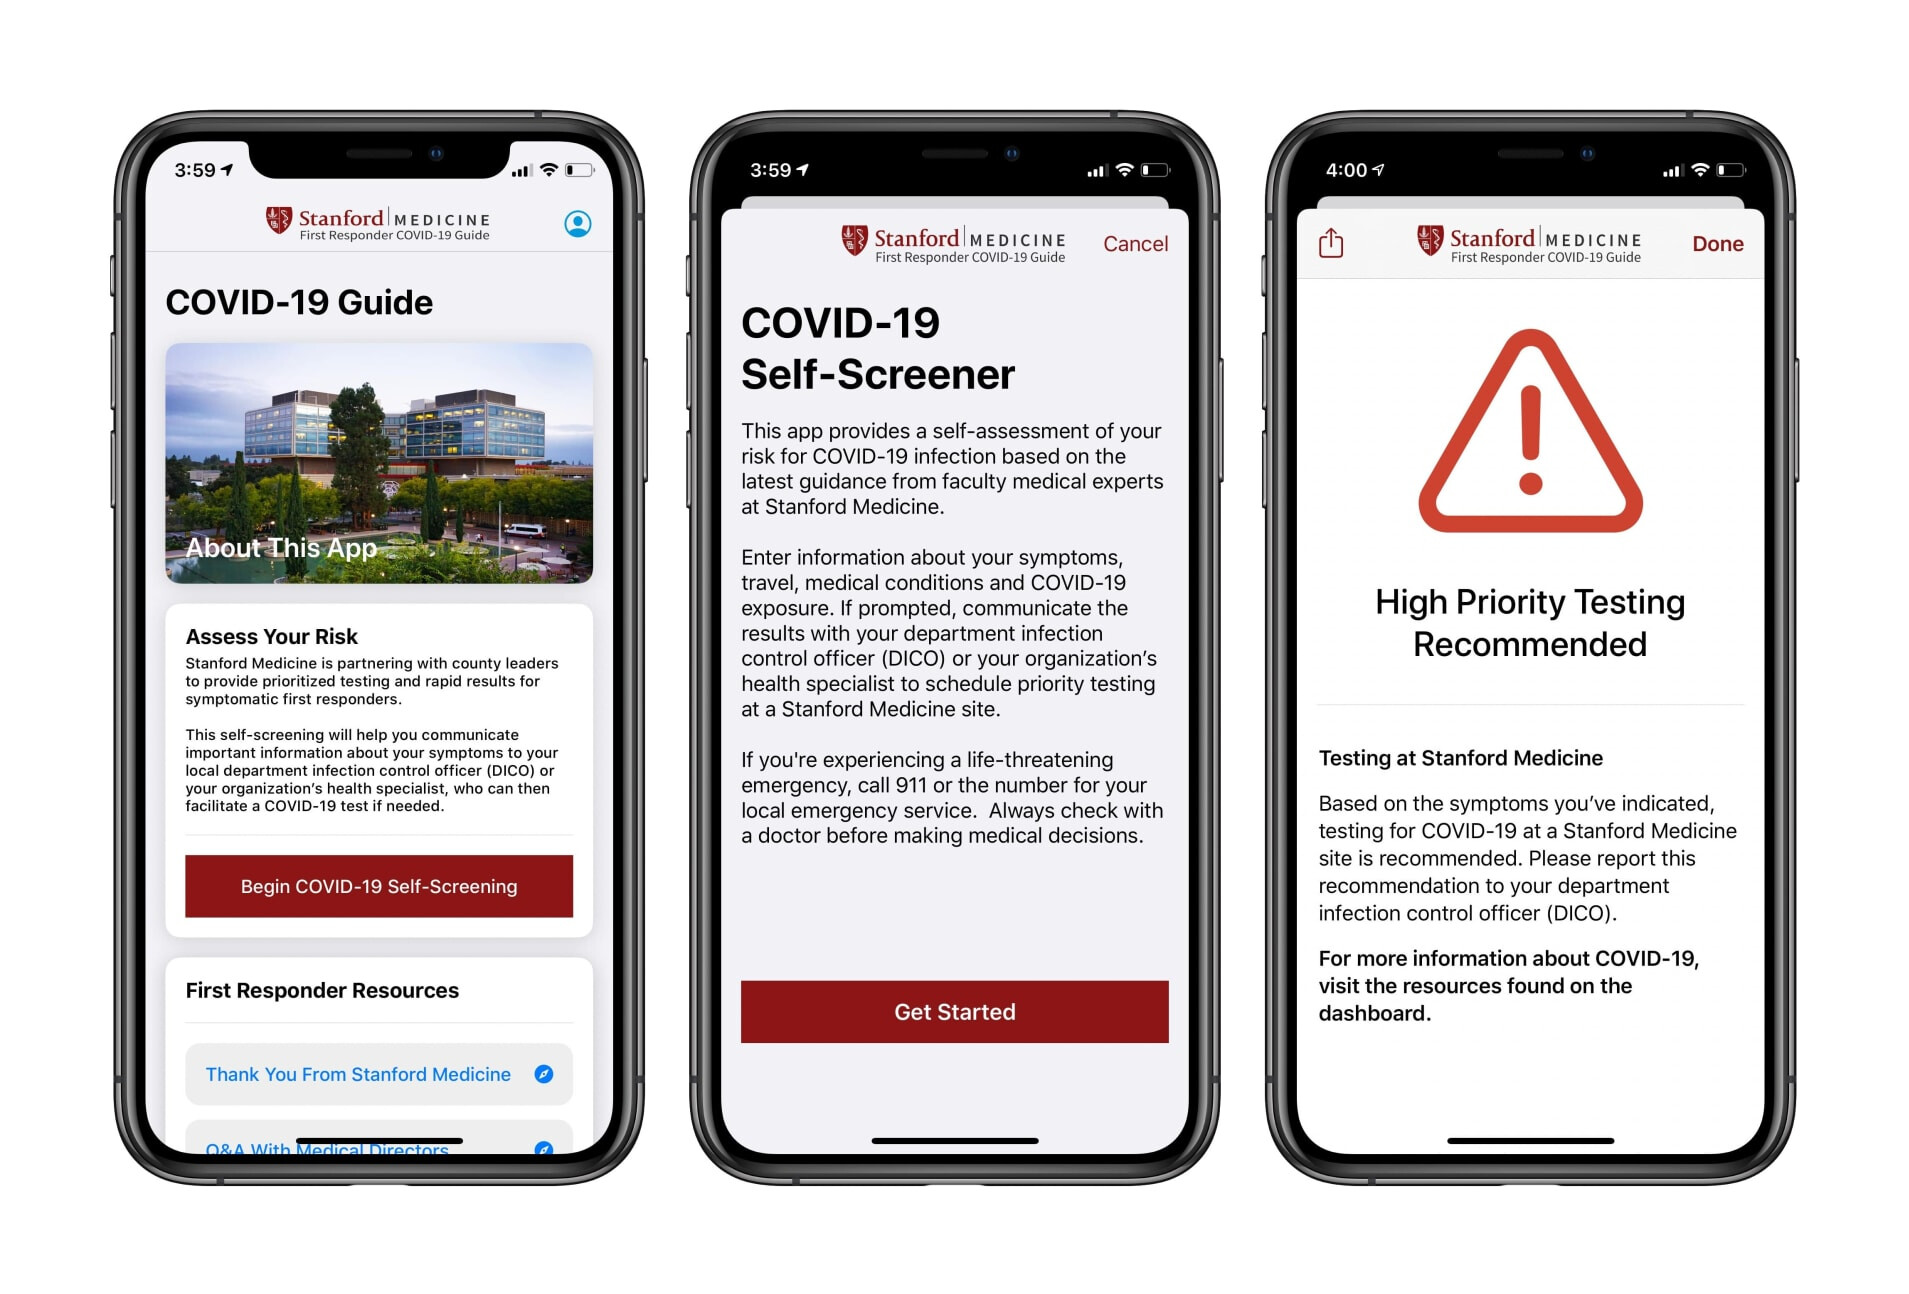 Apple updates COVID-19 app with new features